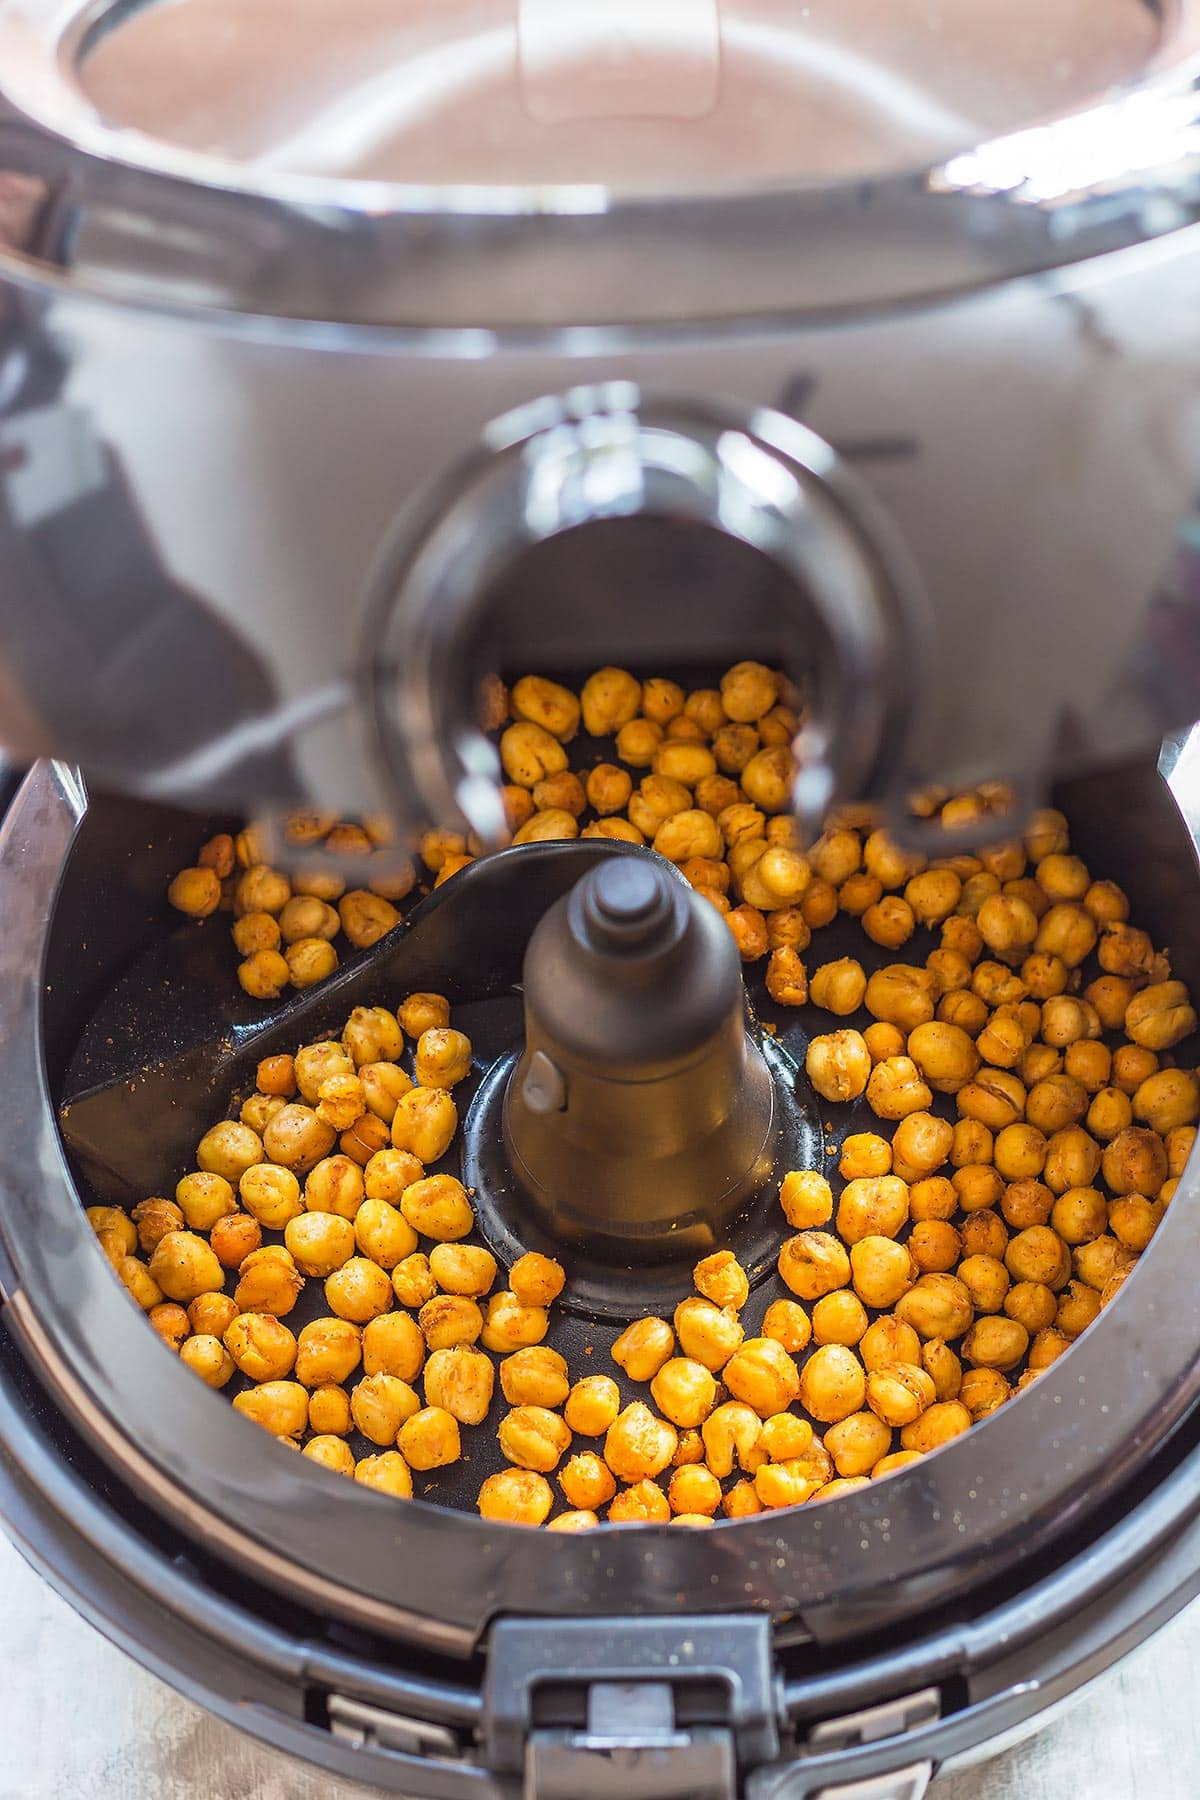 Crispy Chickpeas in Air Fryer